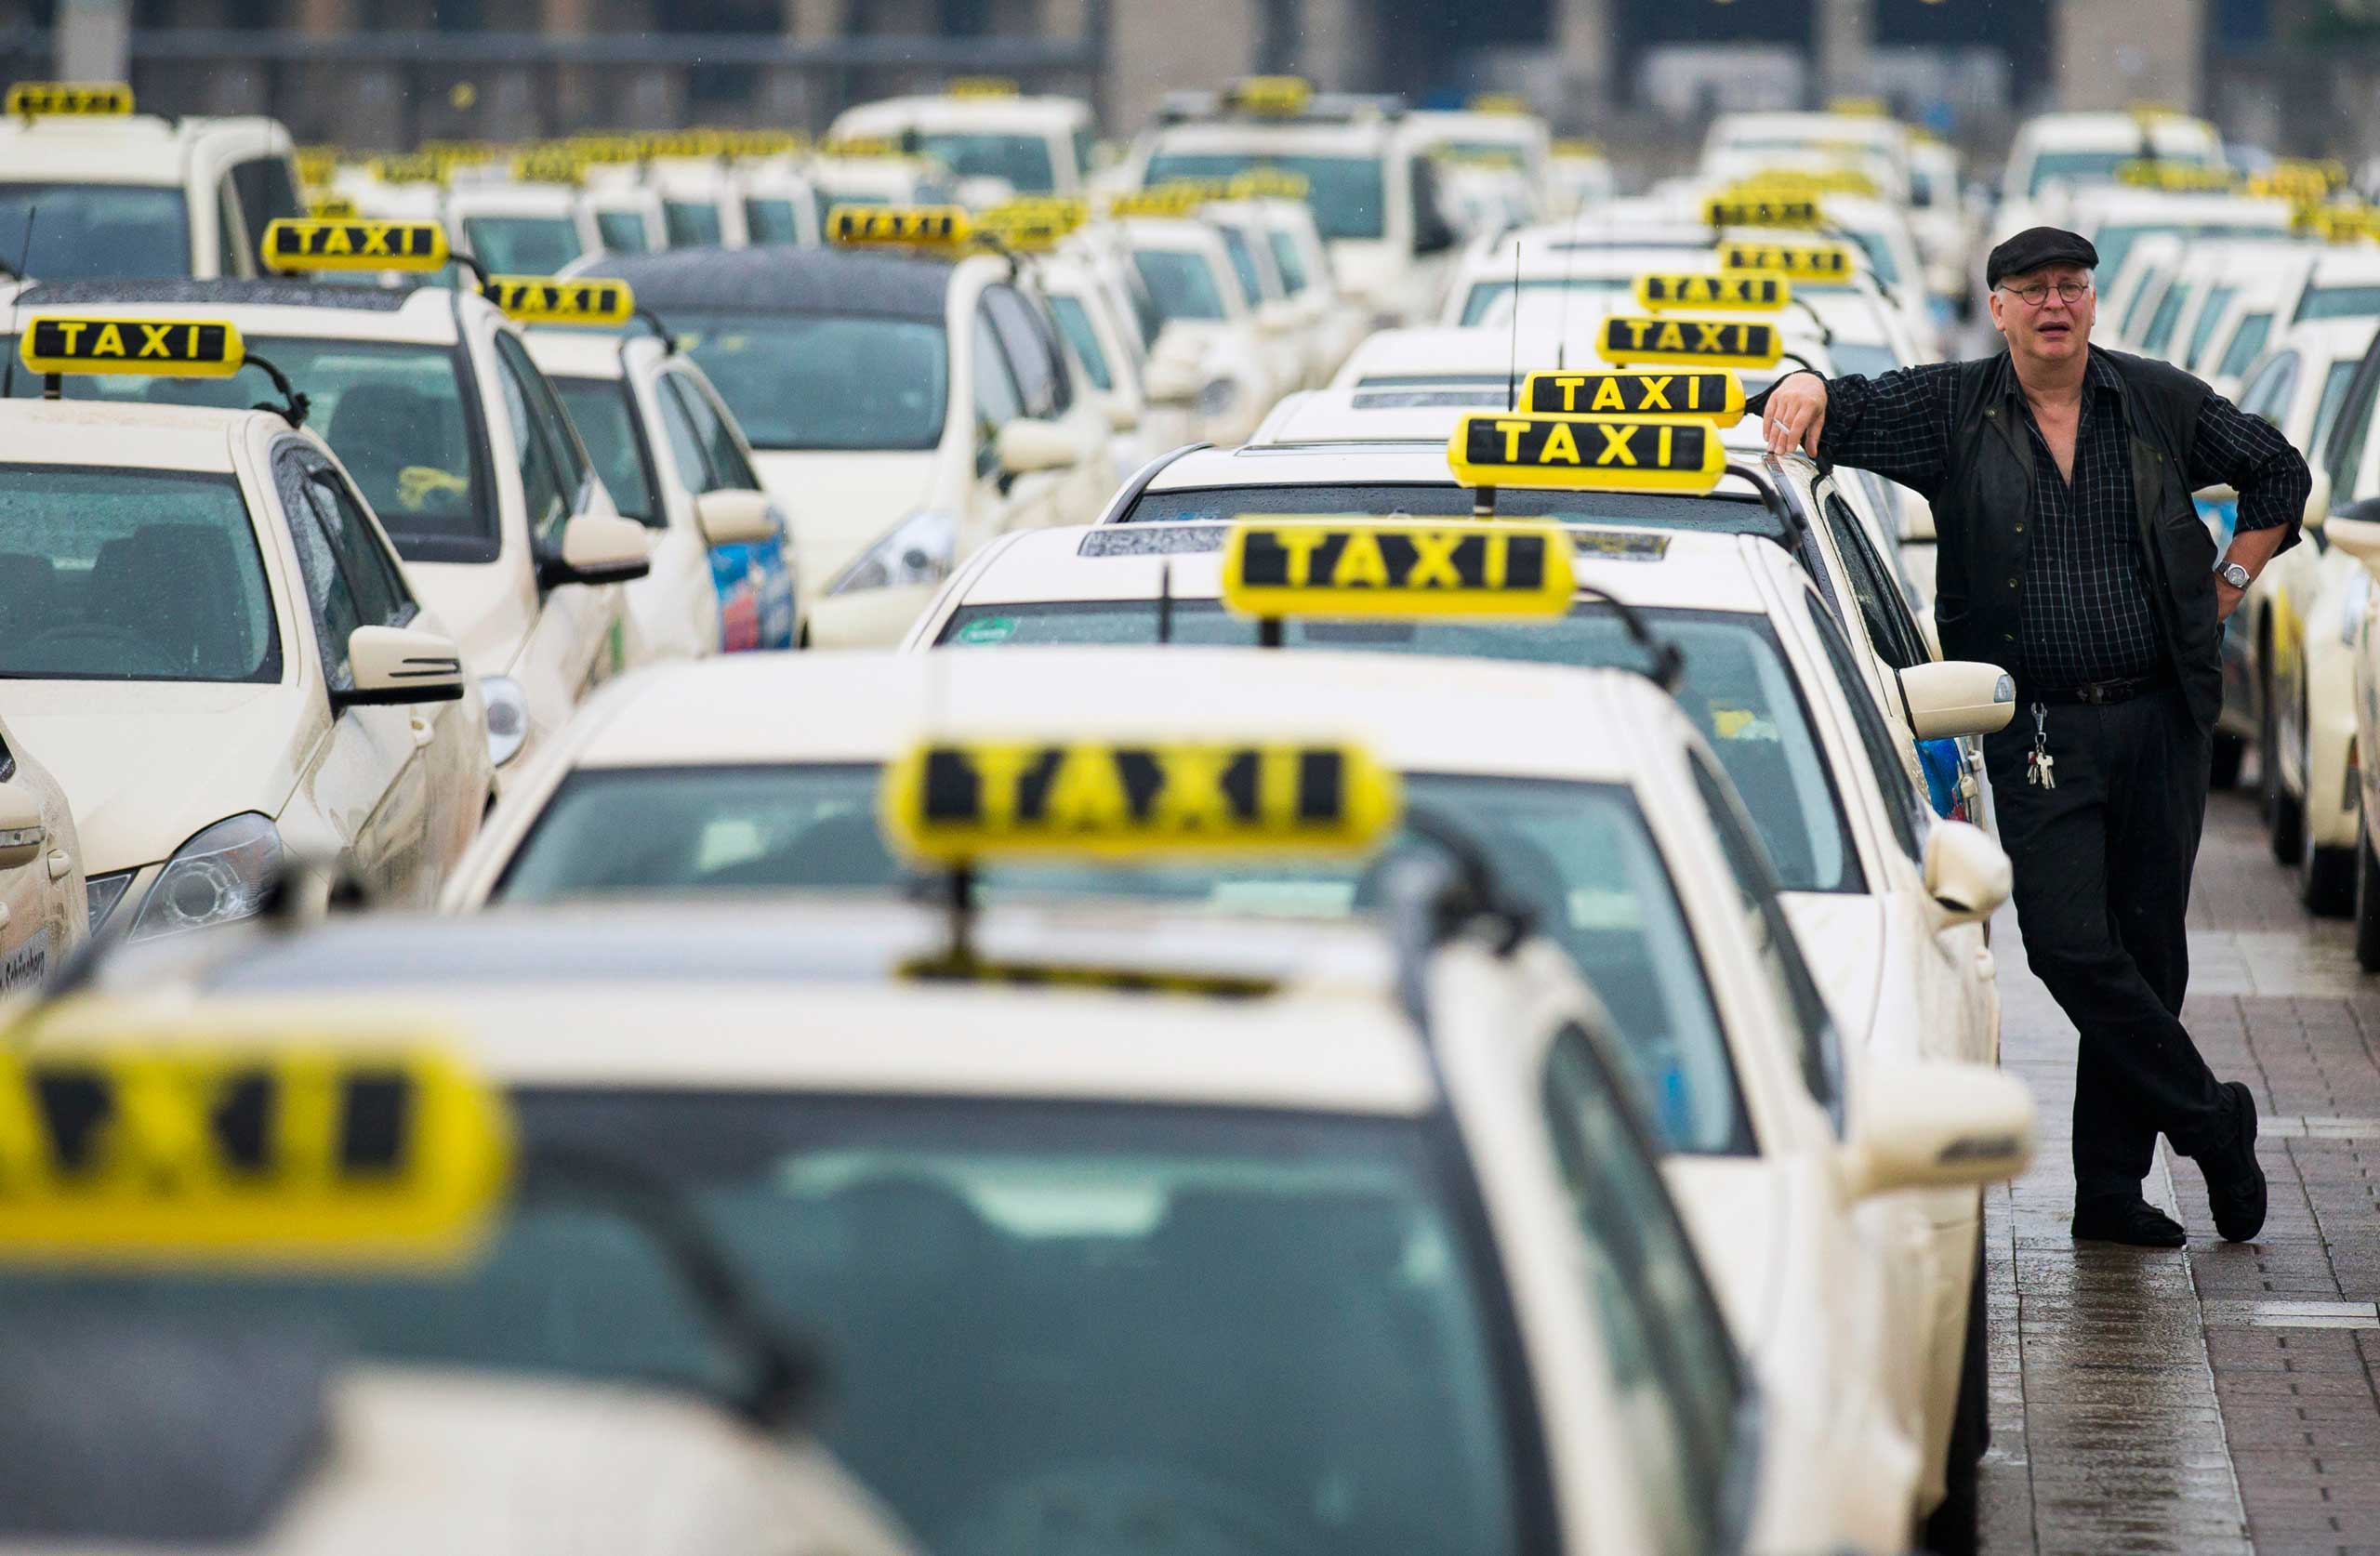 A taxi driver listens to speeches by his colleagues, during an Europe-wide protest of licensed taxi drivers against taxi hailing apps that are feared to flush unregulated private drivers into the market, in front of the Olympic stadium in Berlin on June 11, 2014.